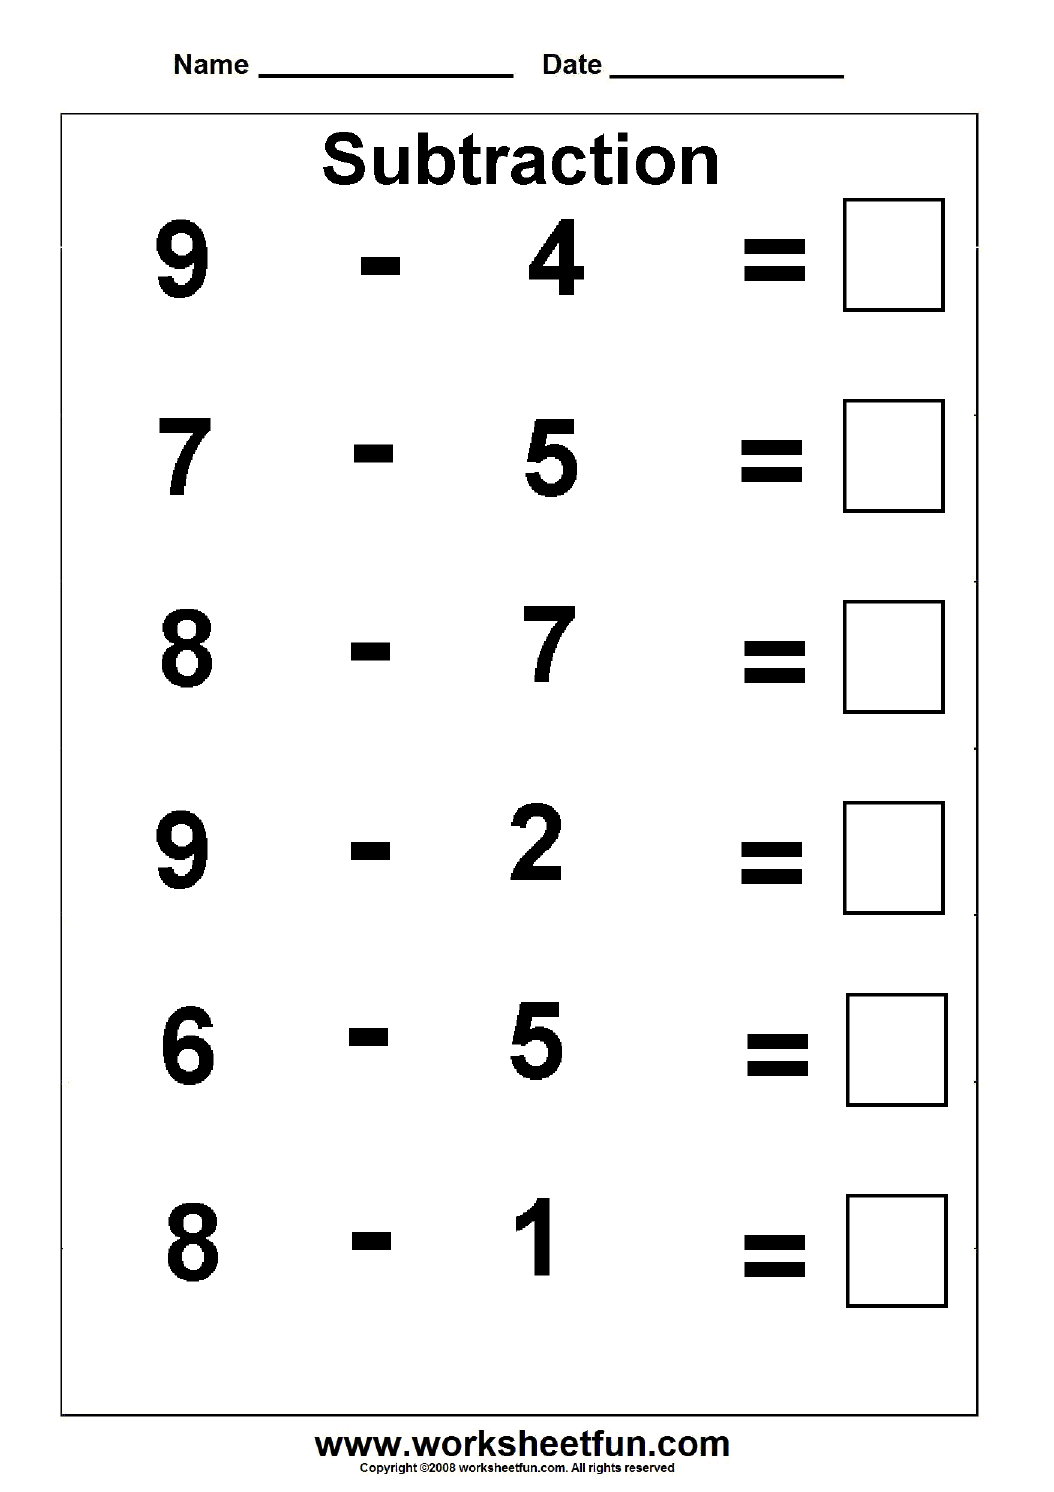 Worksheet Subtraction For Kindergarten subtraction for kindergarten scalien addition and worksheets abitlikethis